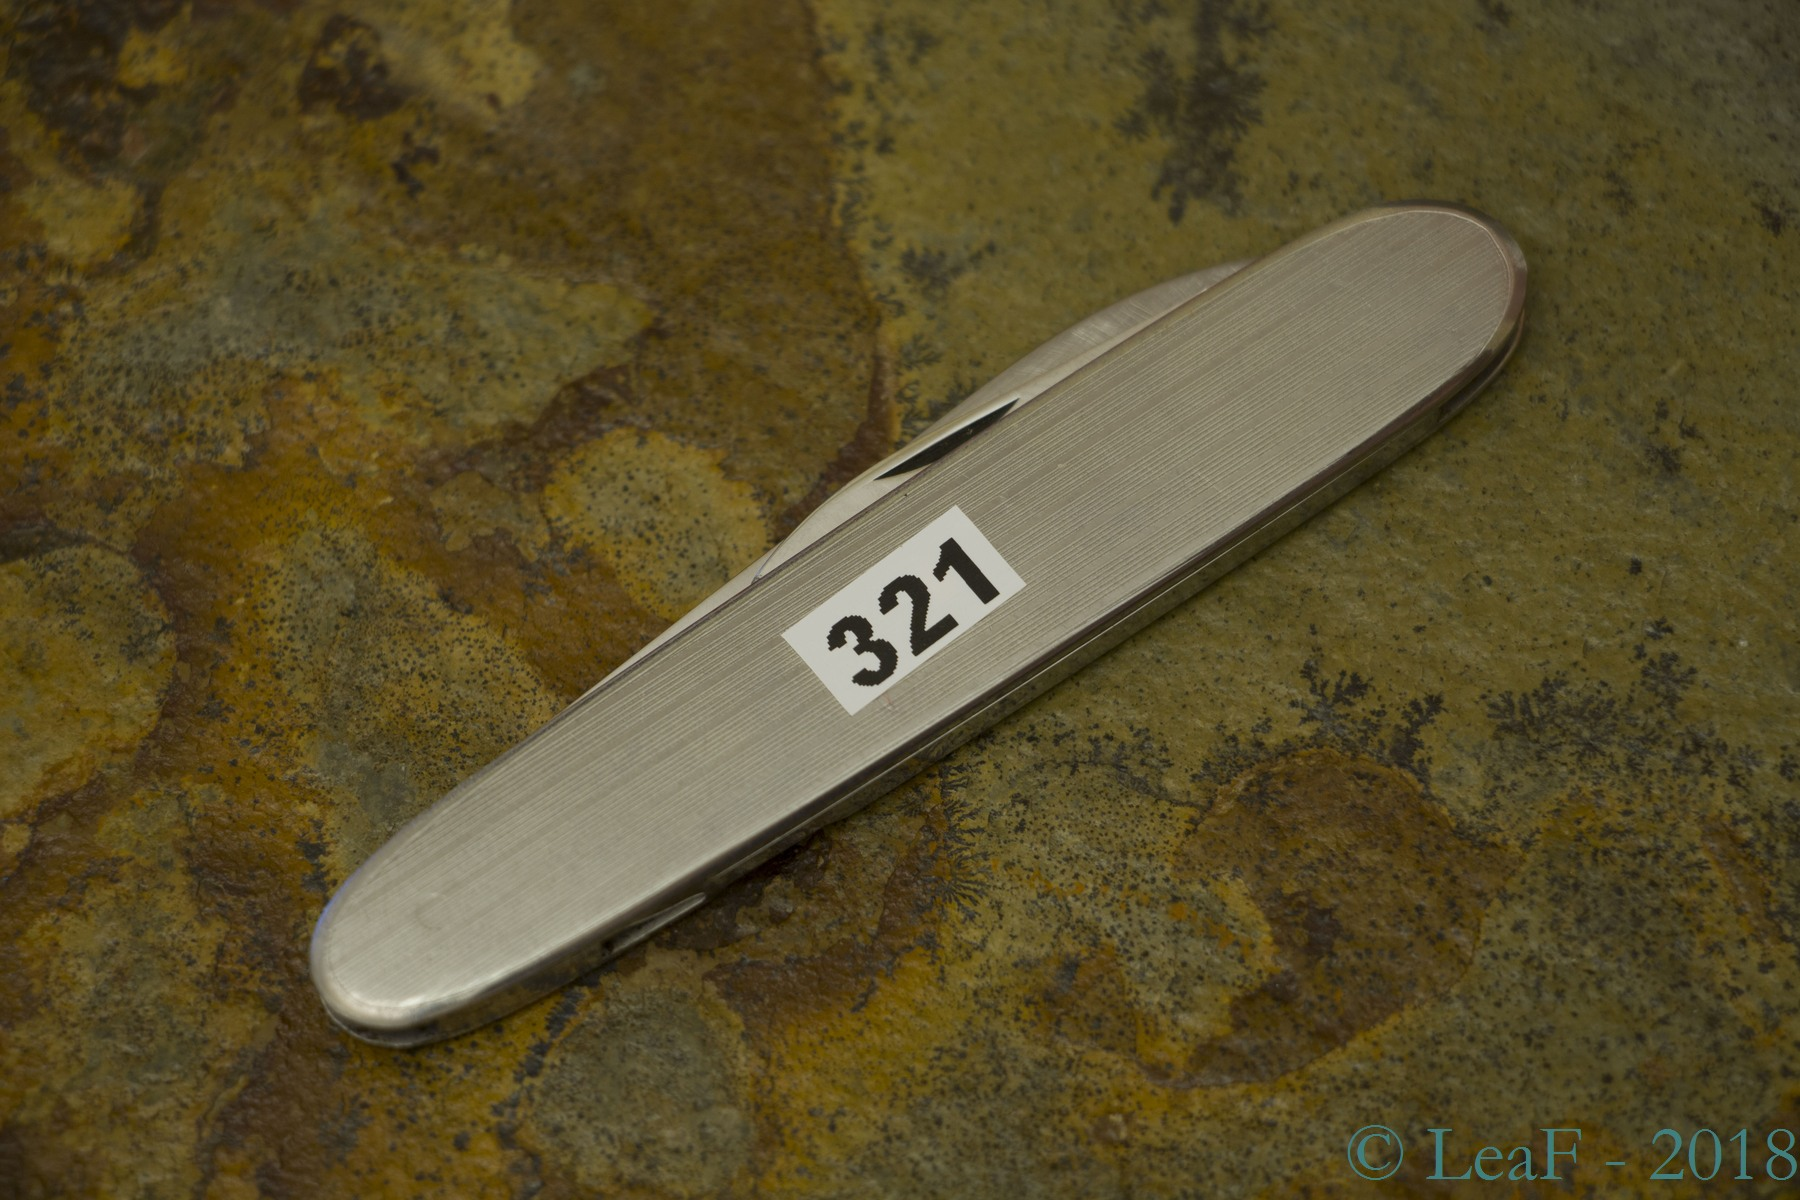 321 Accountant Leaf S Victorinox Knives Collection